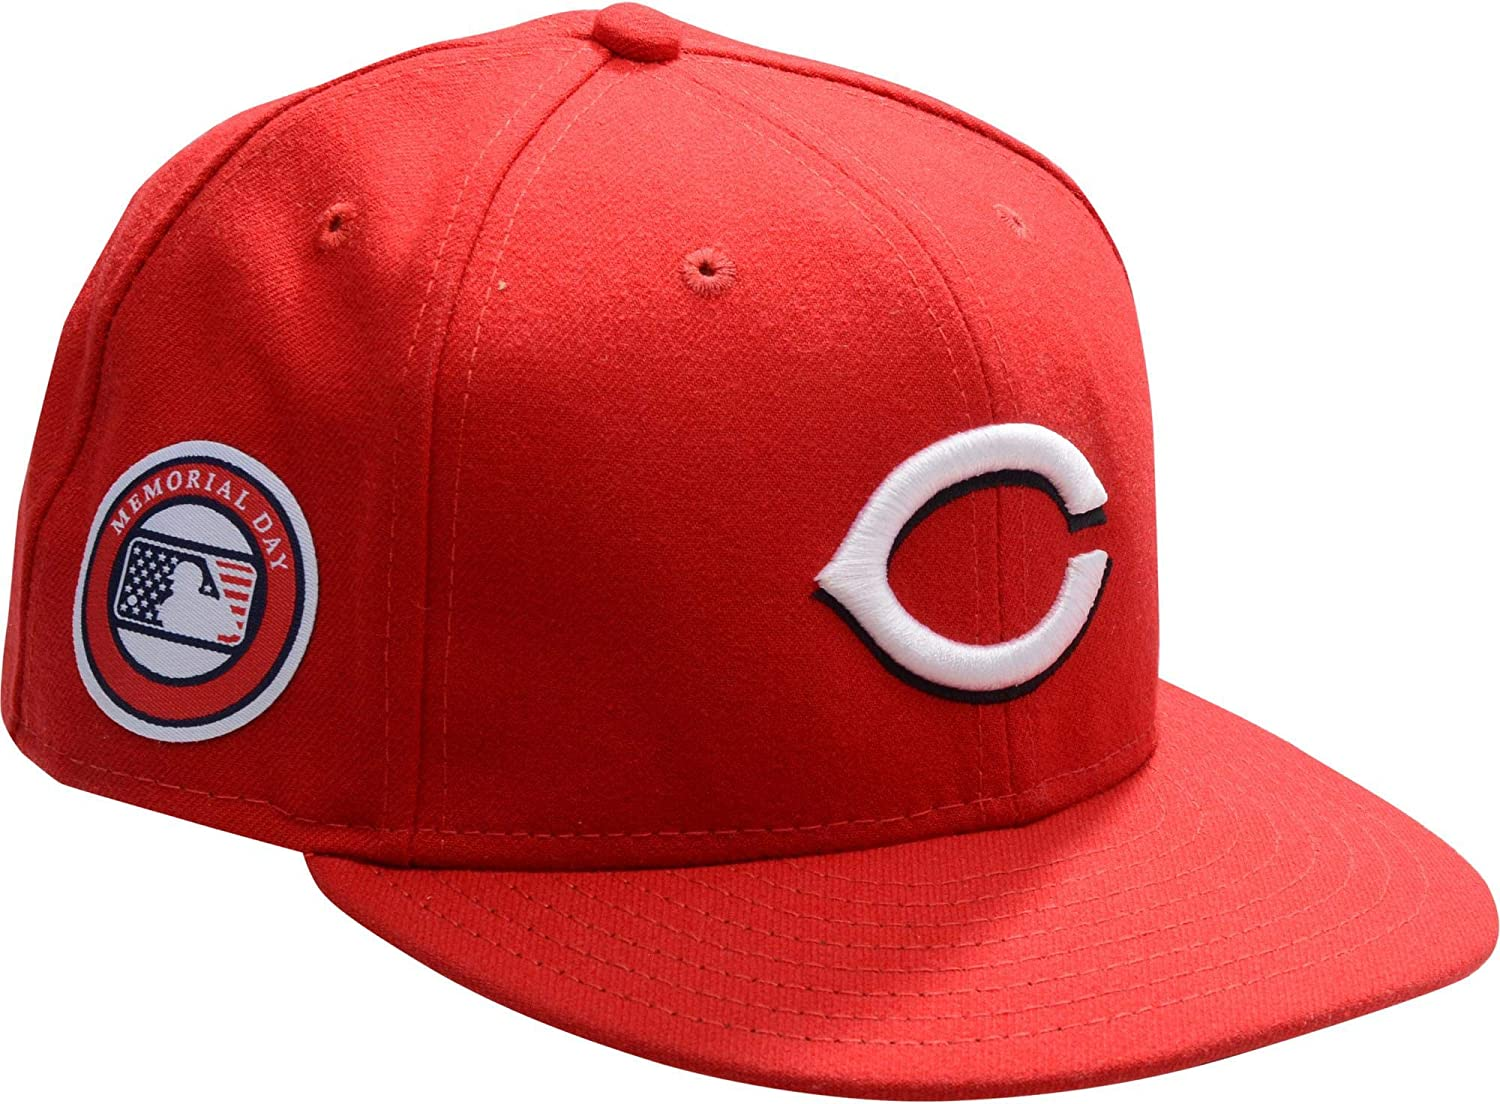 Tucker Barnhart Cincinnati Reds Game-Used #16 Red Cap with Memorial Day Patch vs. Pittsburgh Pirates on May 27, 2019 - Game 2 - Size 7 - DNP - Fanatics Authentic Certified